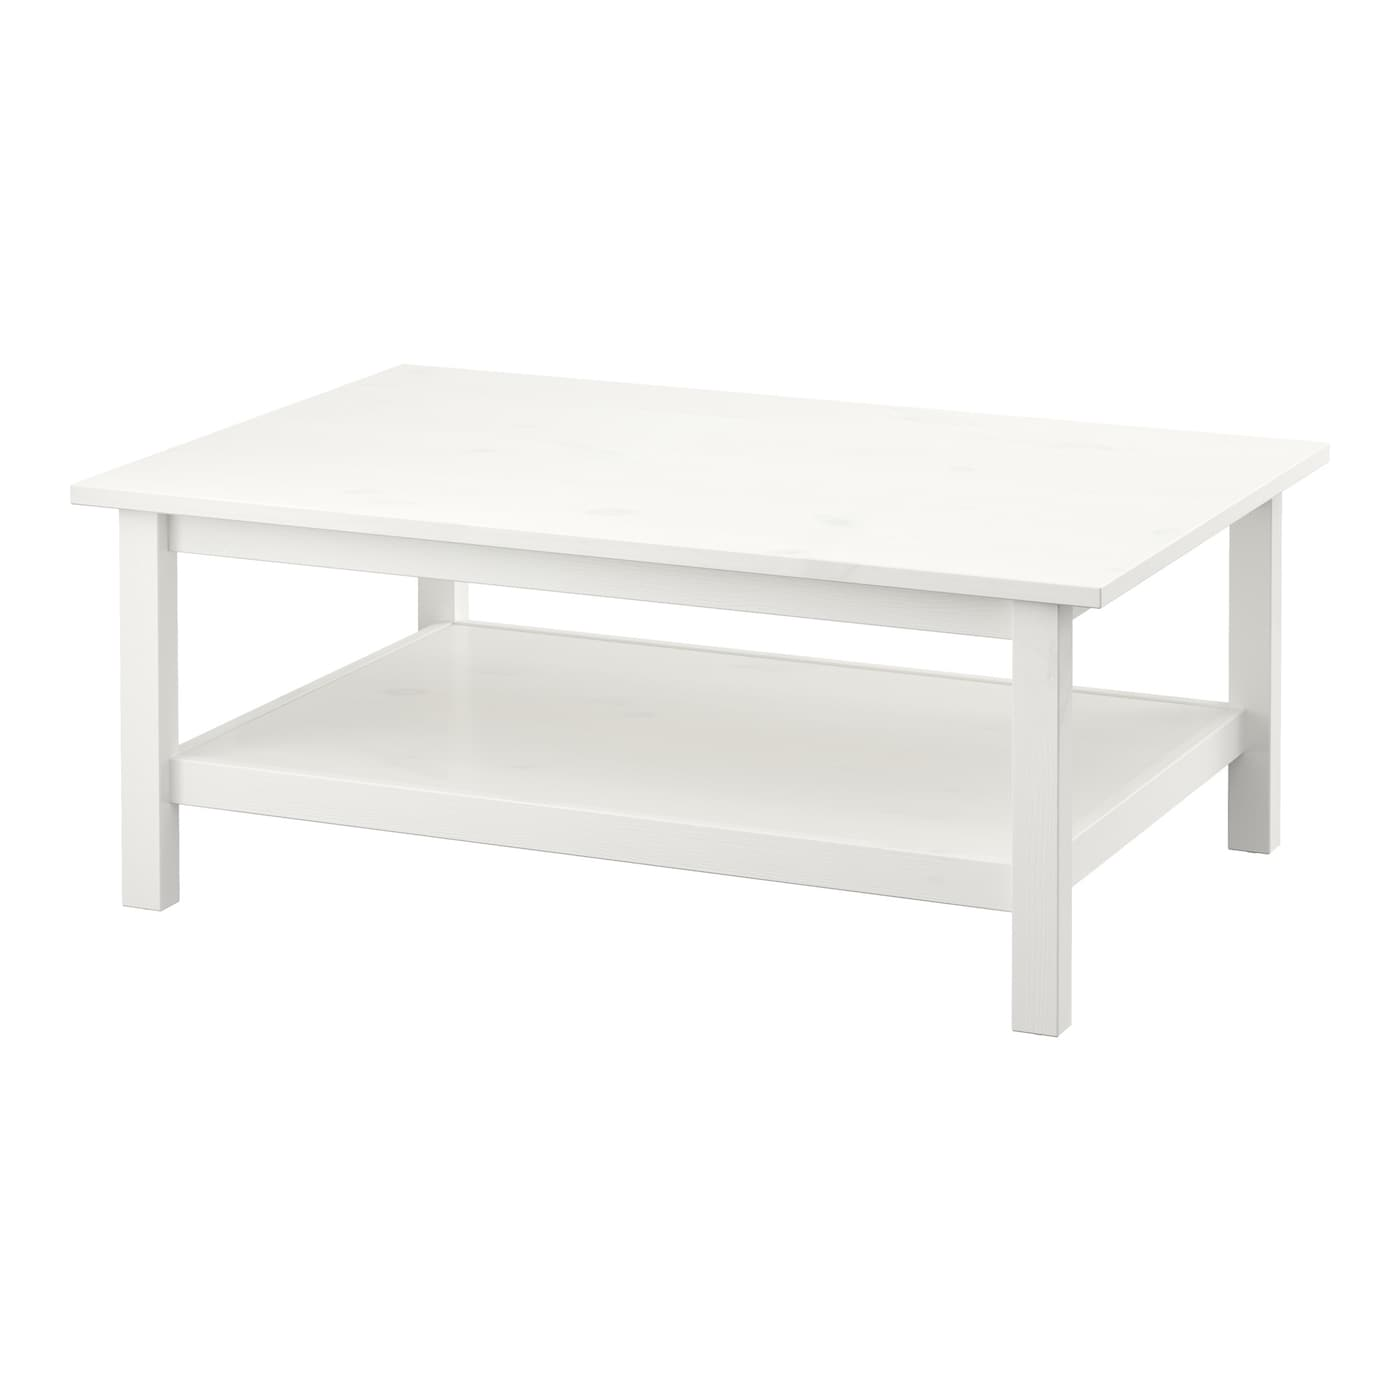 Hemnes Coffee Table White Stain 118x75 Cm: HEMNES Coffee Table White Stain 118 X 75 Cm